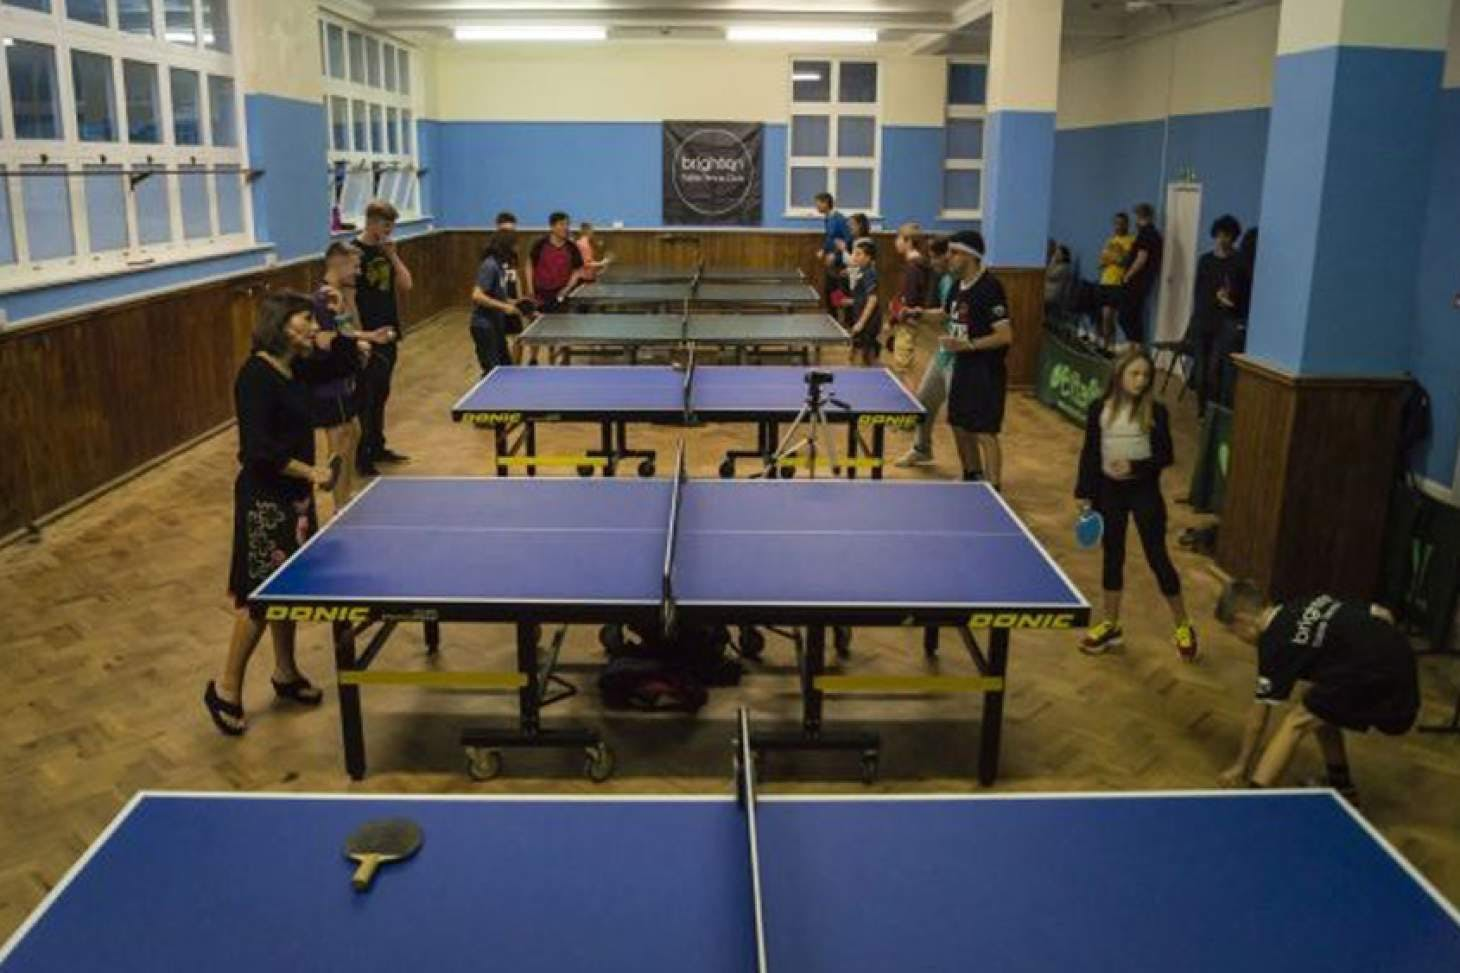 Brighton Table Tennis Club Table | Hard table tennis table